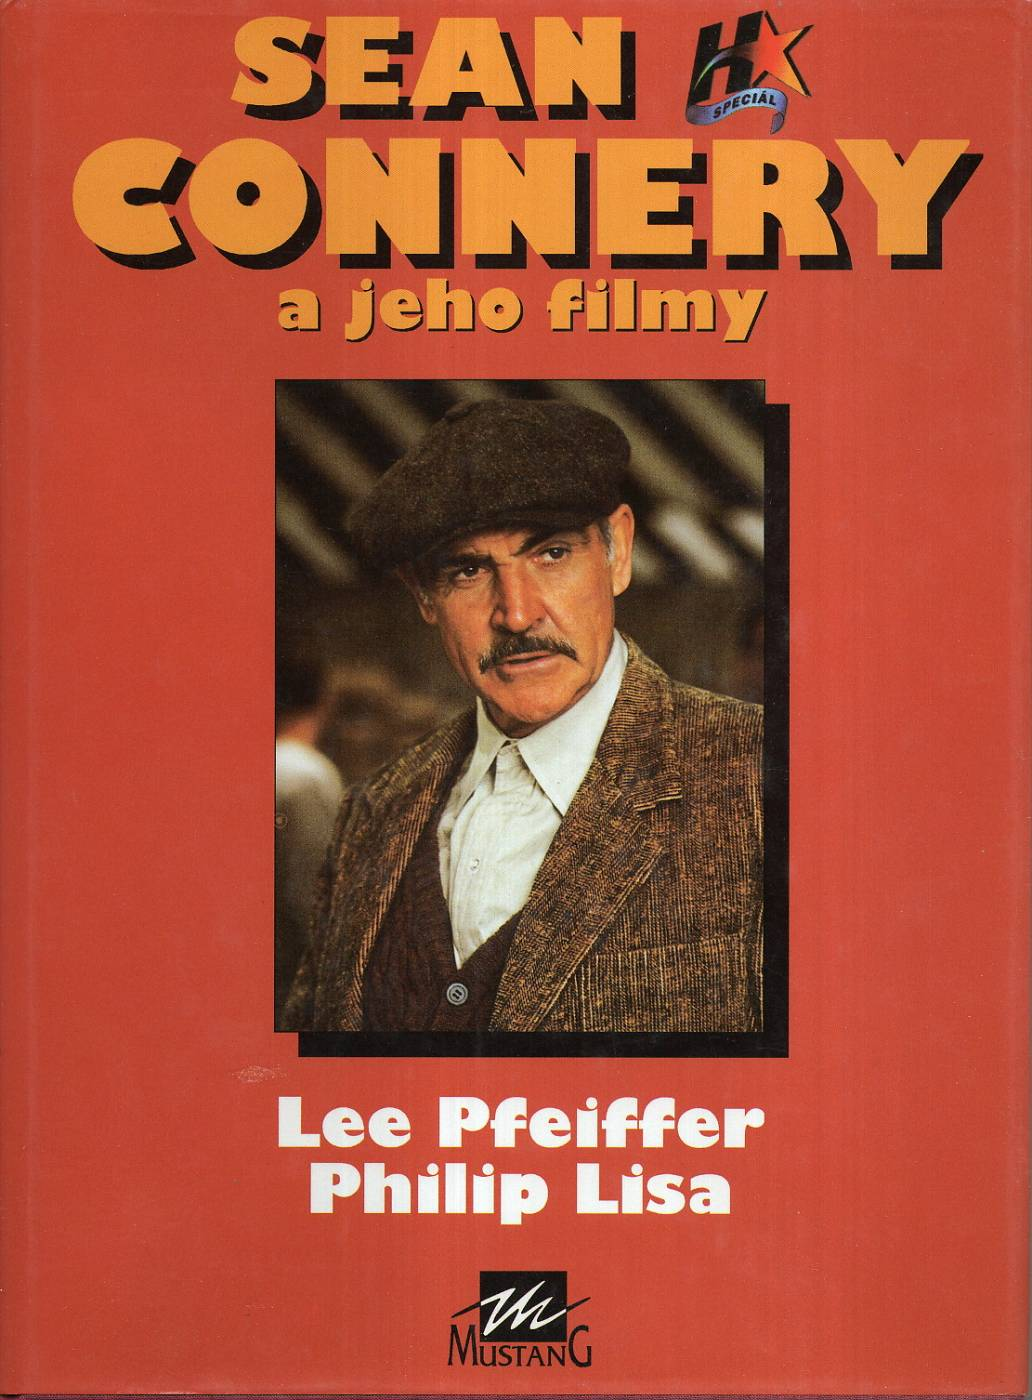 Pfeiffer, Lee / Lisa, Philip – Sean Connery a jeho filmy